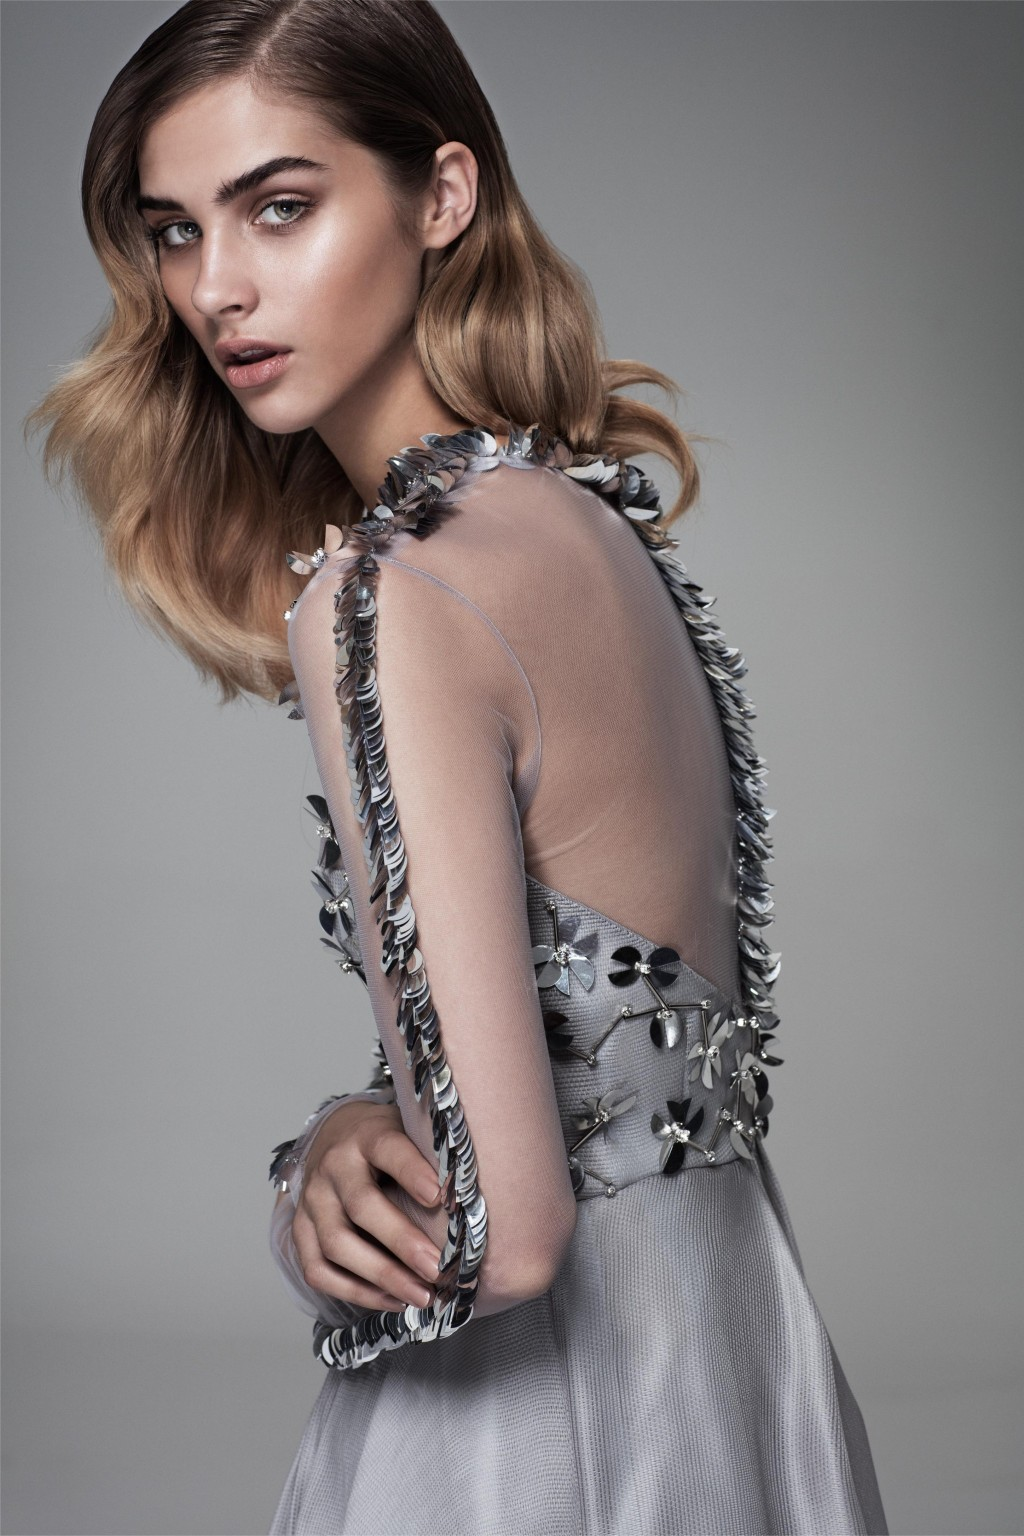 Yasmin Mansour Goes Mad for Metallics for Spring/Summer 2016